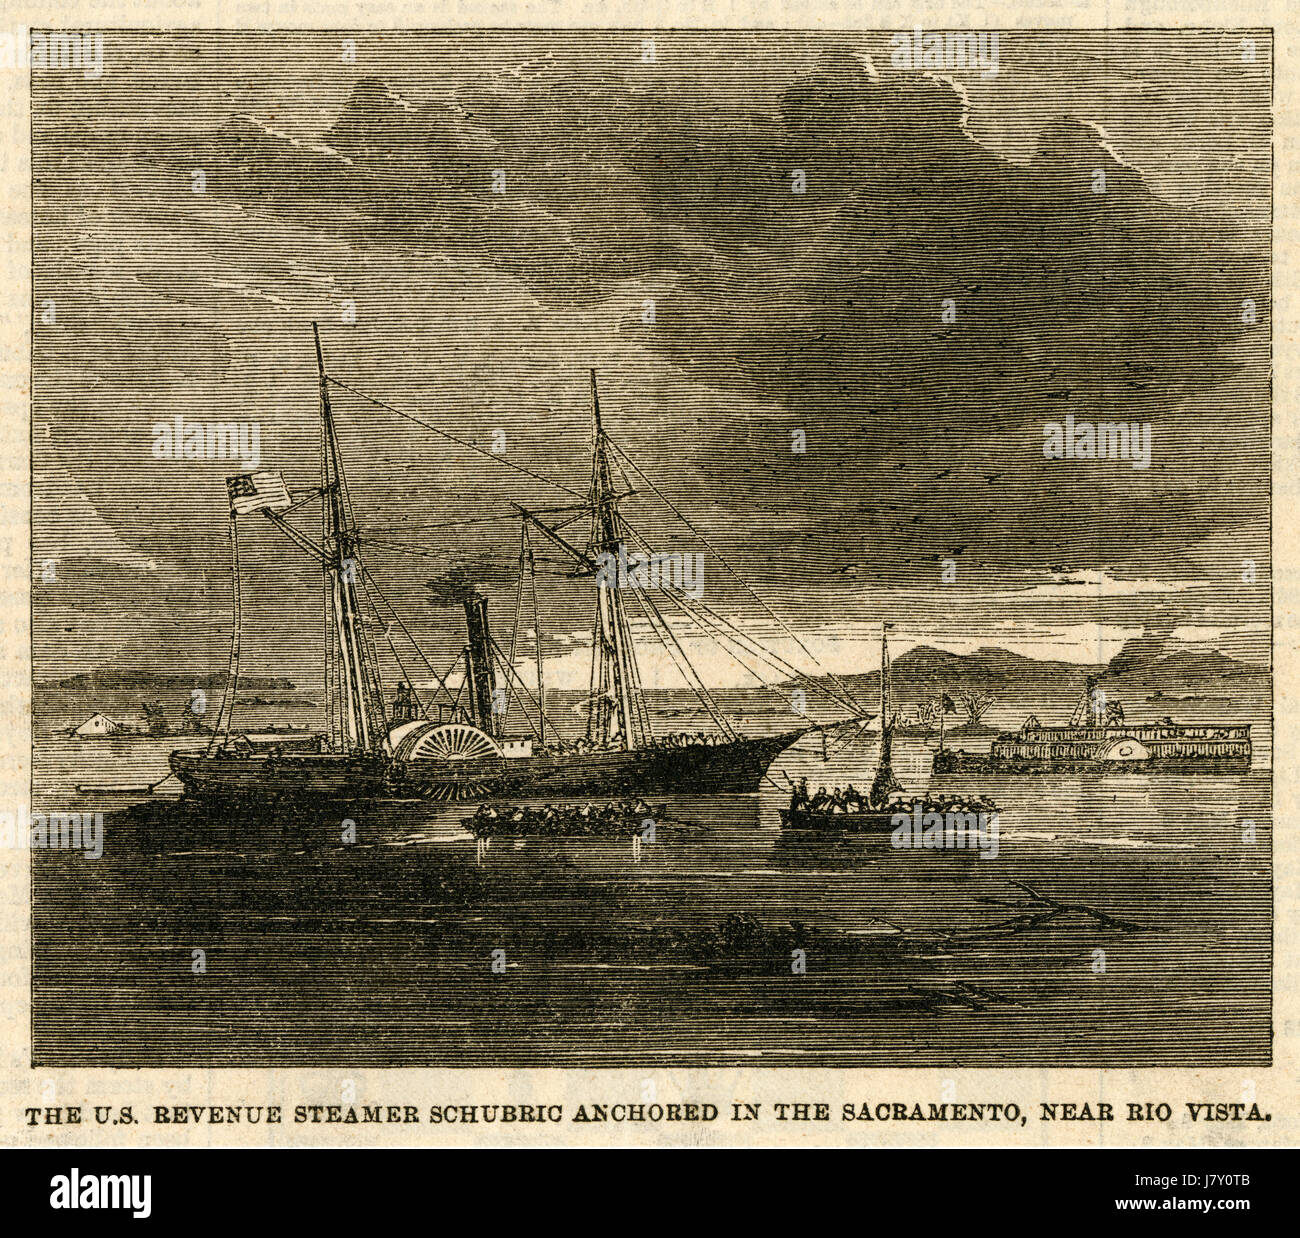 Antique c1870 engraving, The USLHT Shubrick (1865) Anchored in the Sacramento River, near Rio Vista, California. - Stock Image